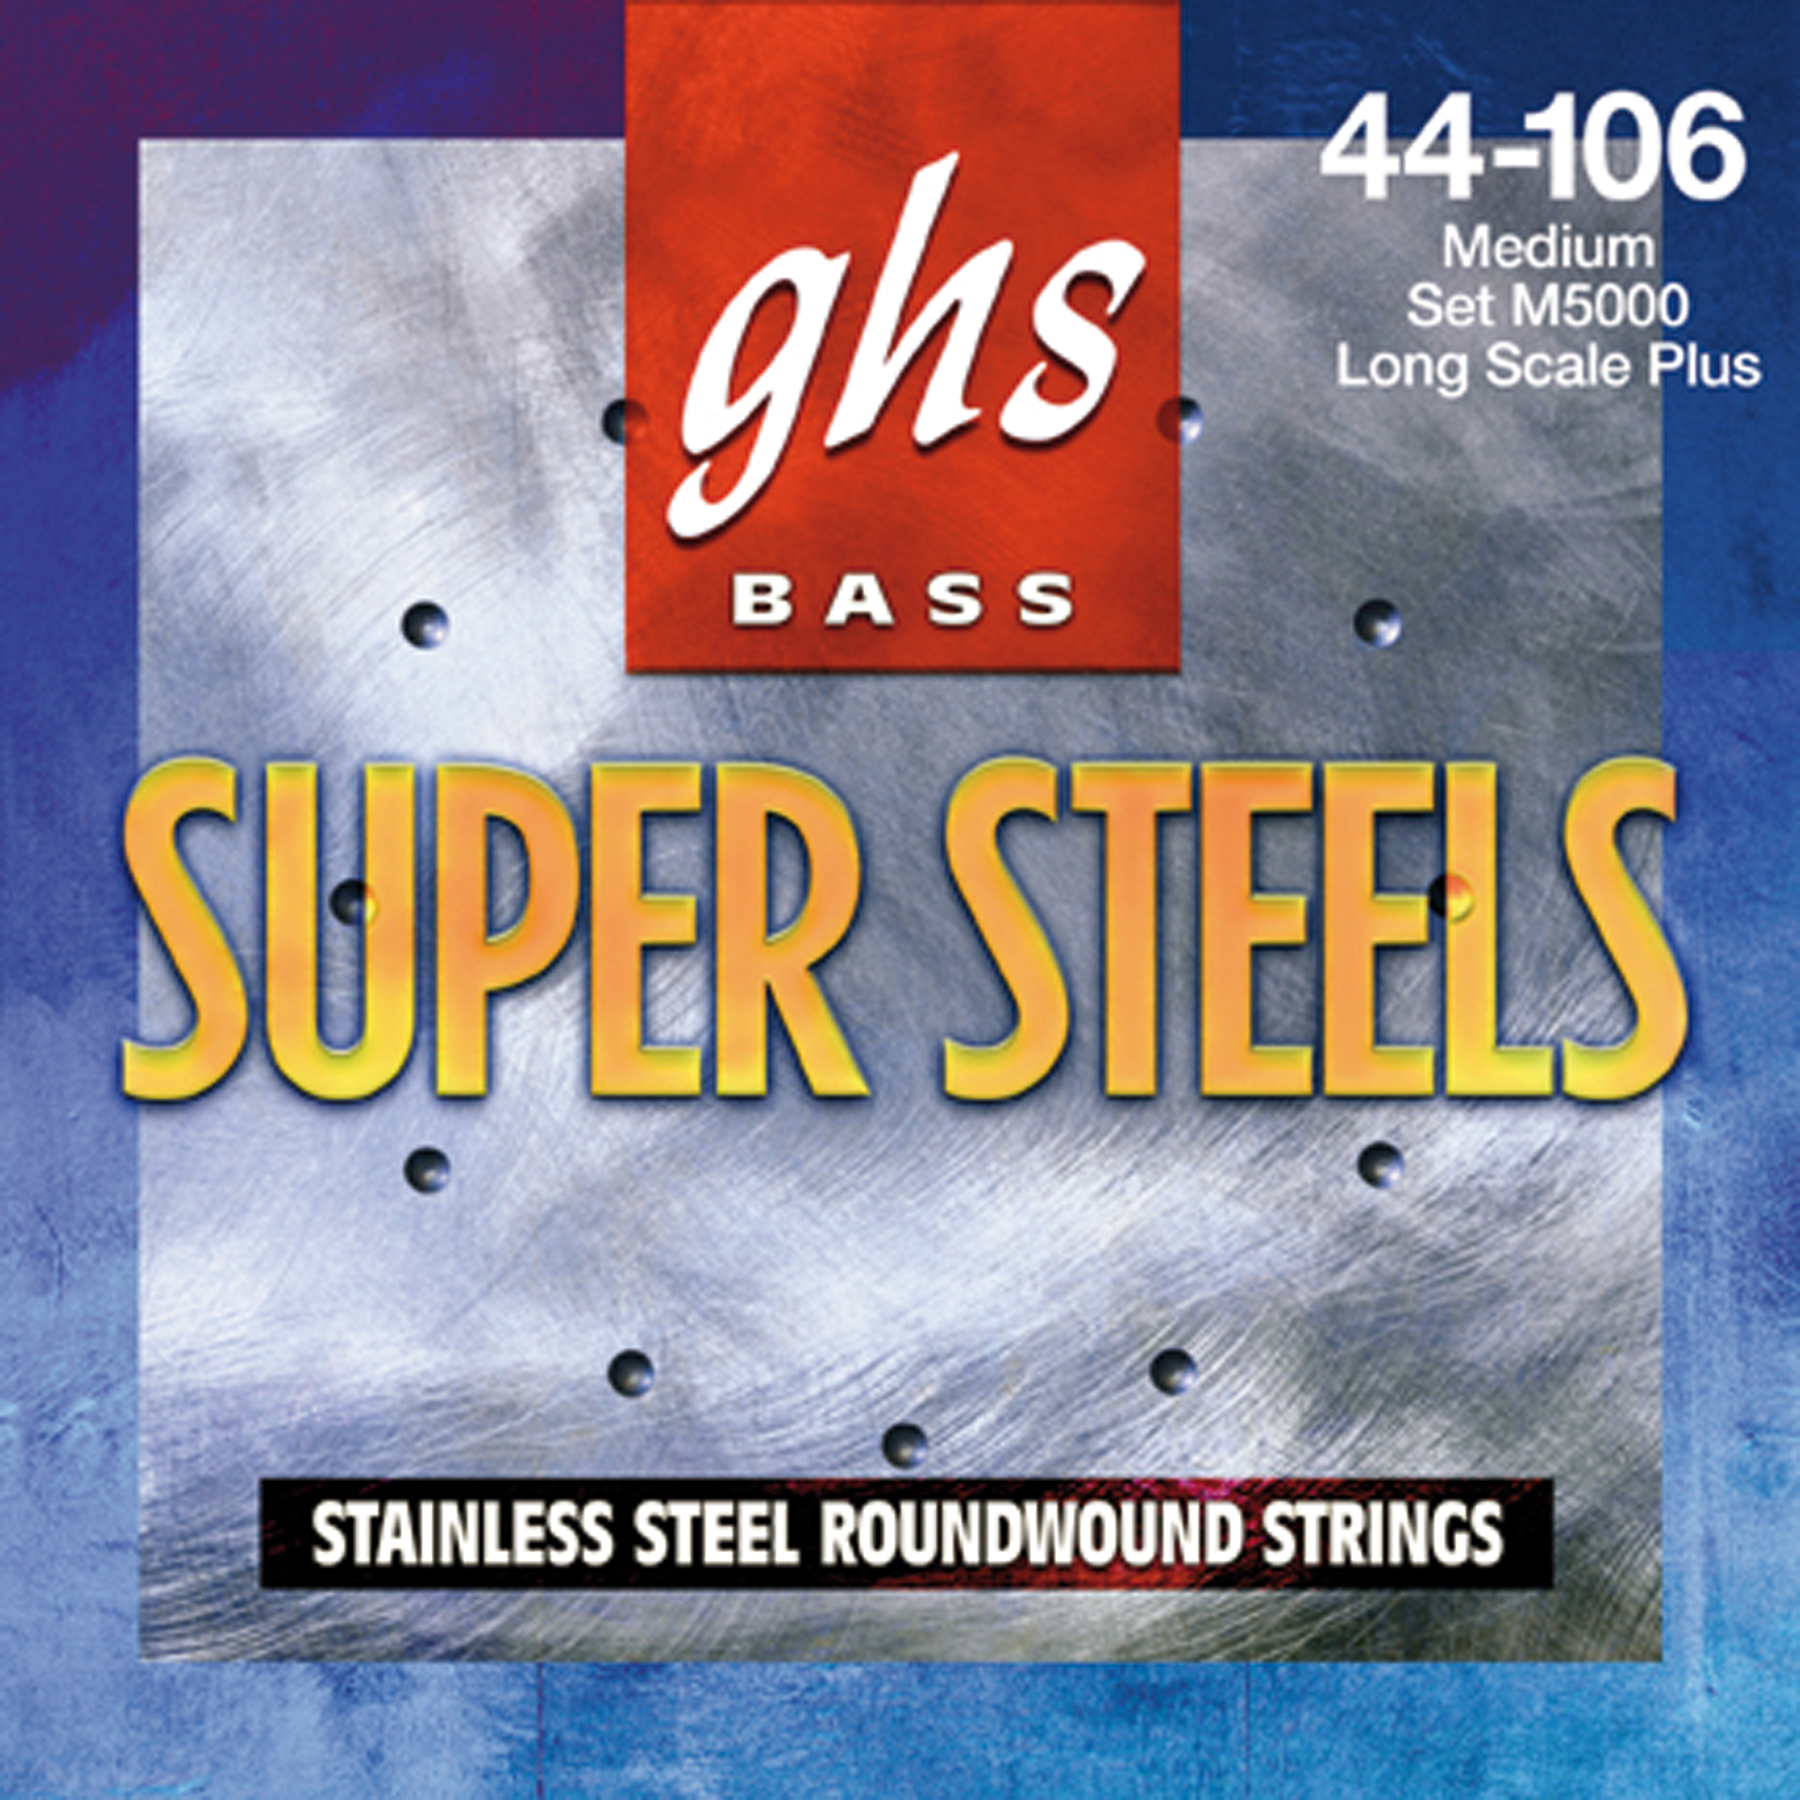 STB98 Rivestita Super Steel